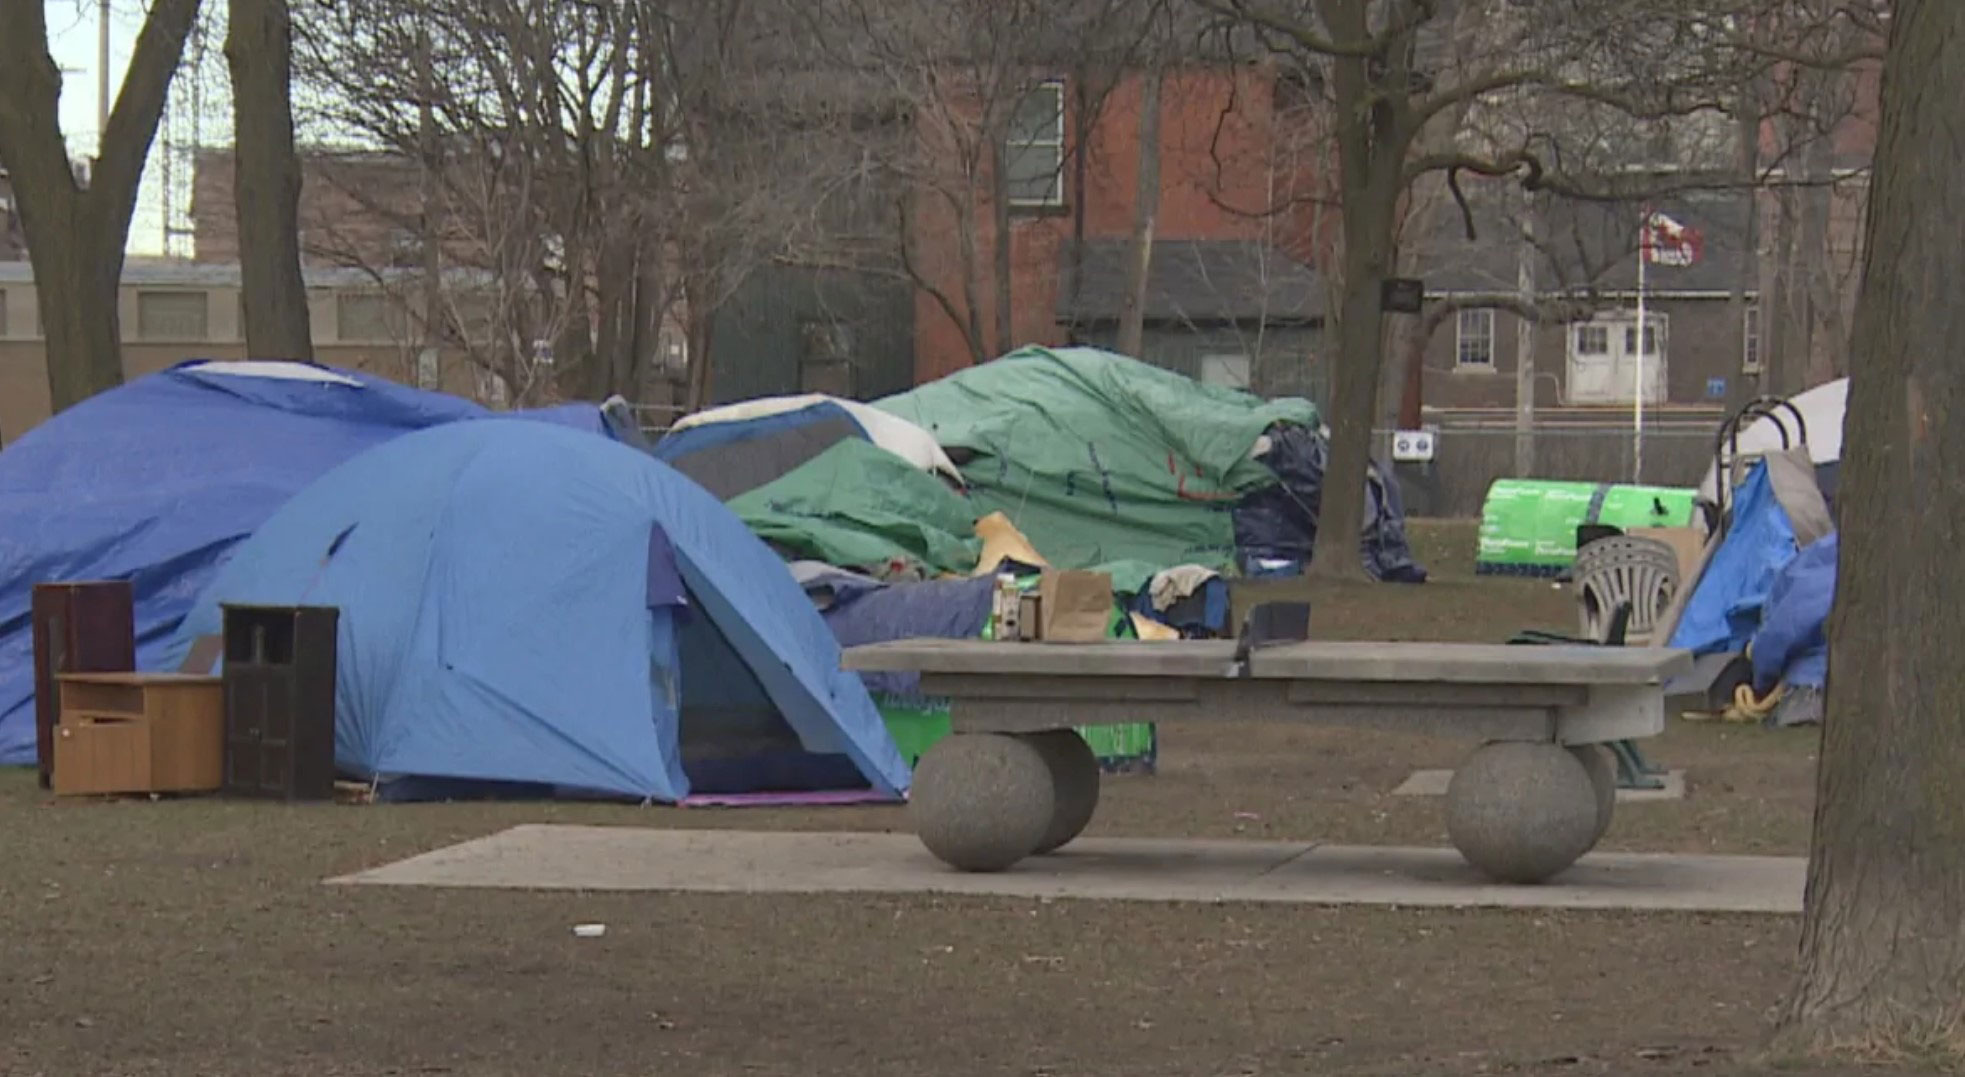 Toronto researchers to study COVID-19 among people experiencing homelessness